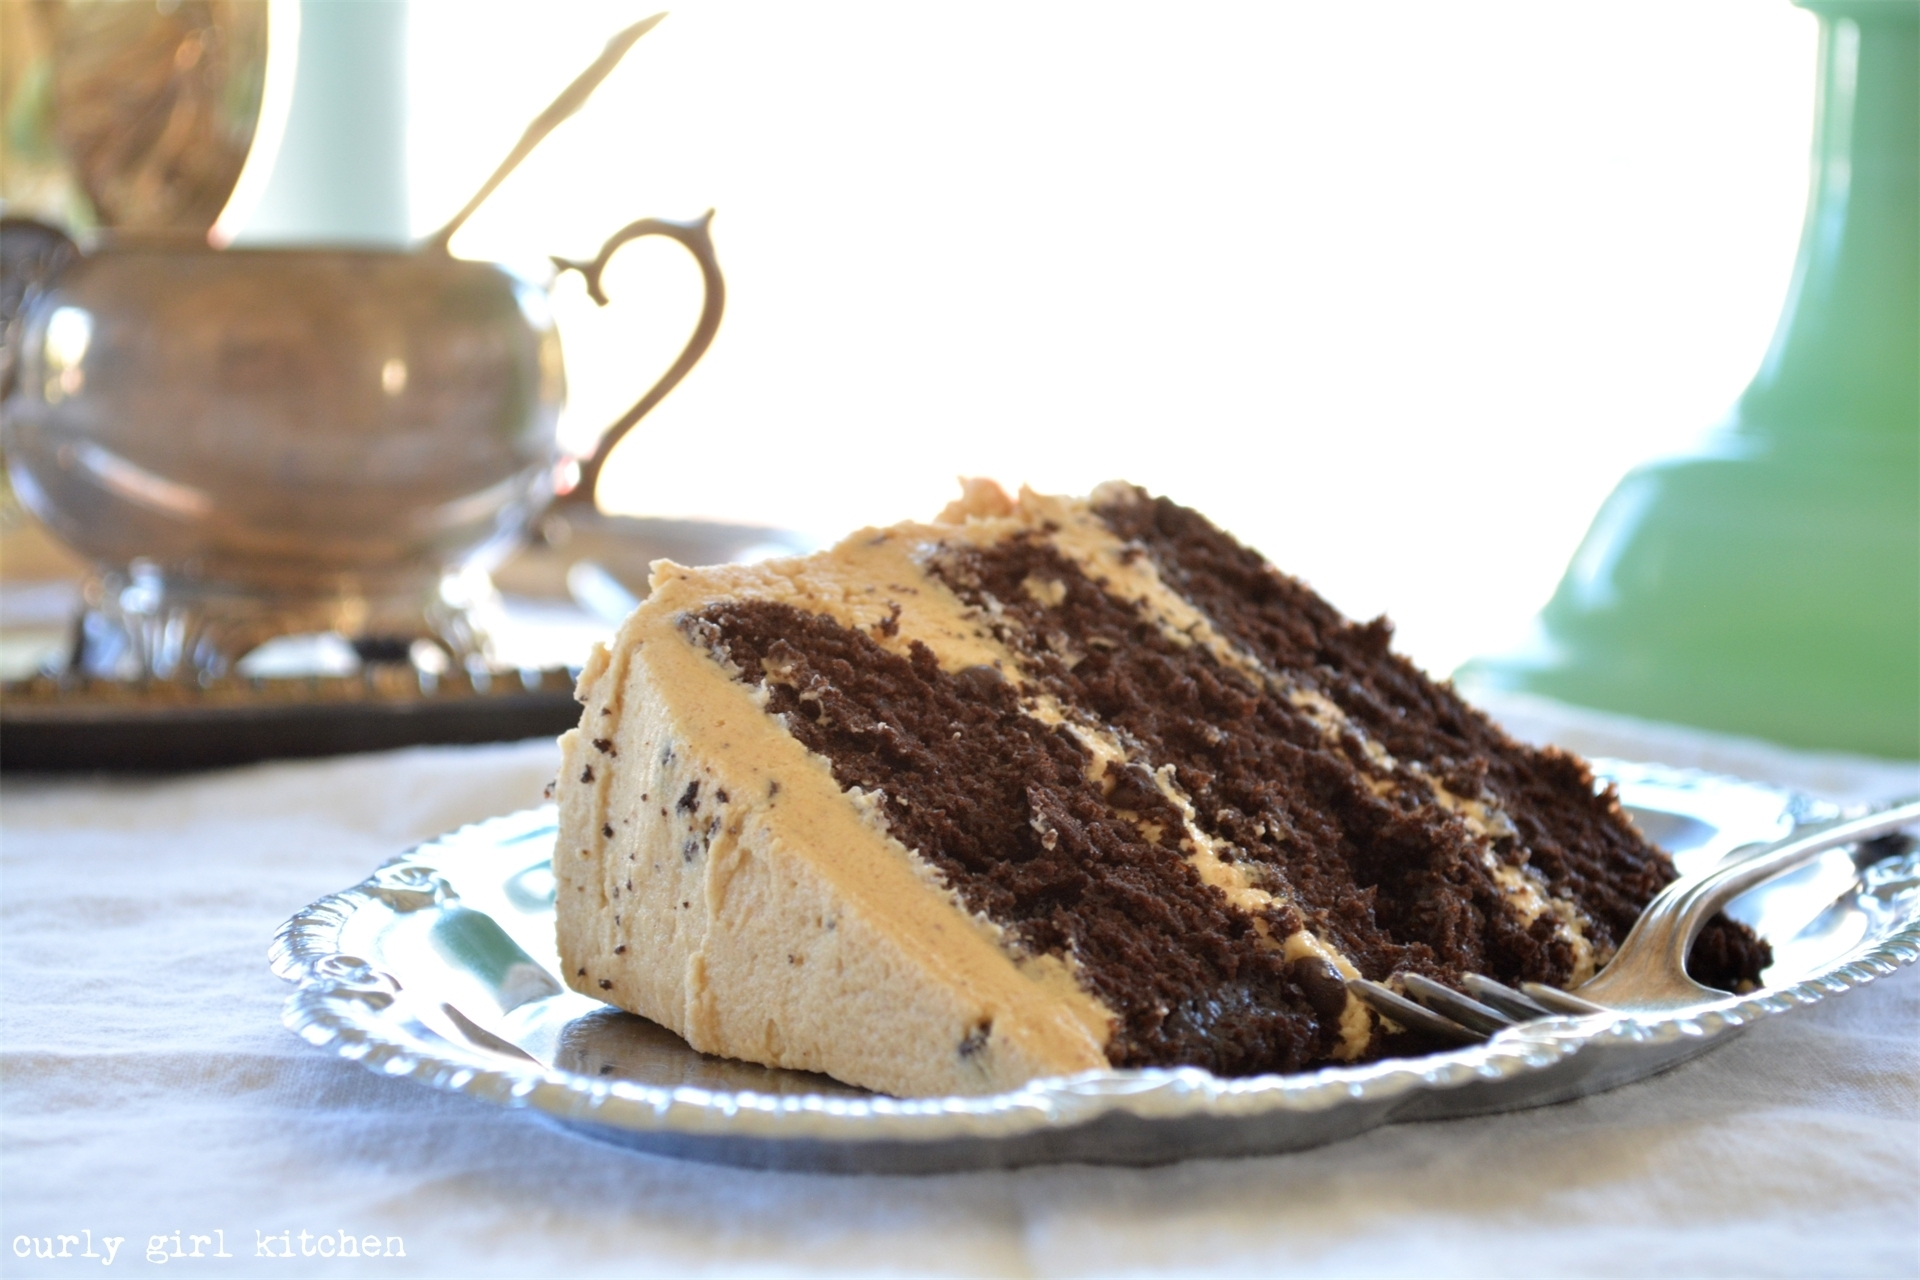 Chocolate Cake with Salted Peanut Butter Chocolate Chip Buttercream